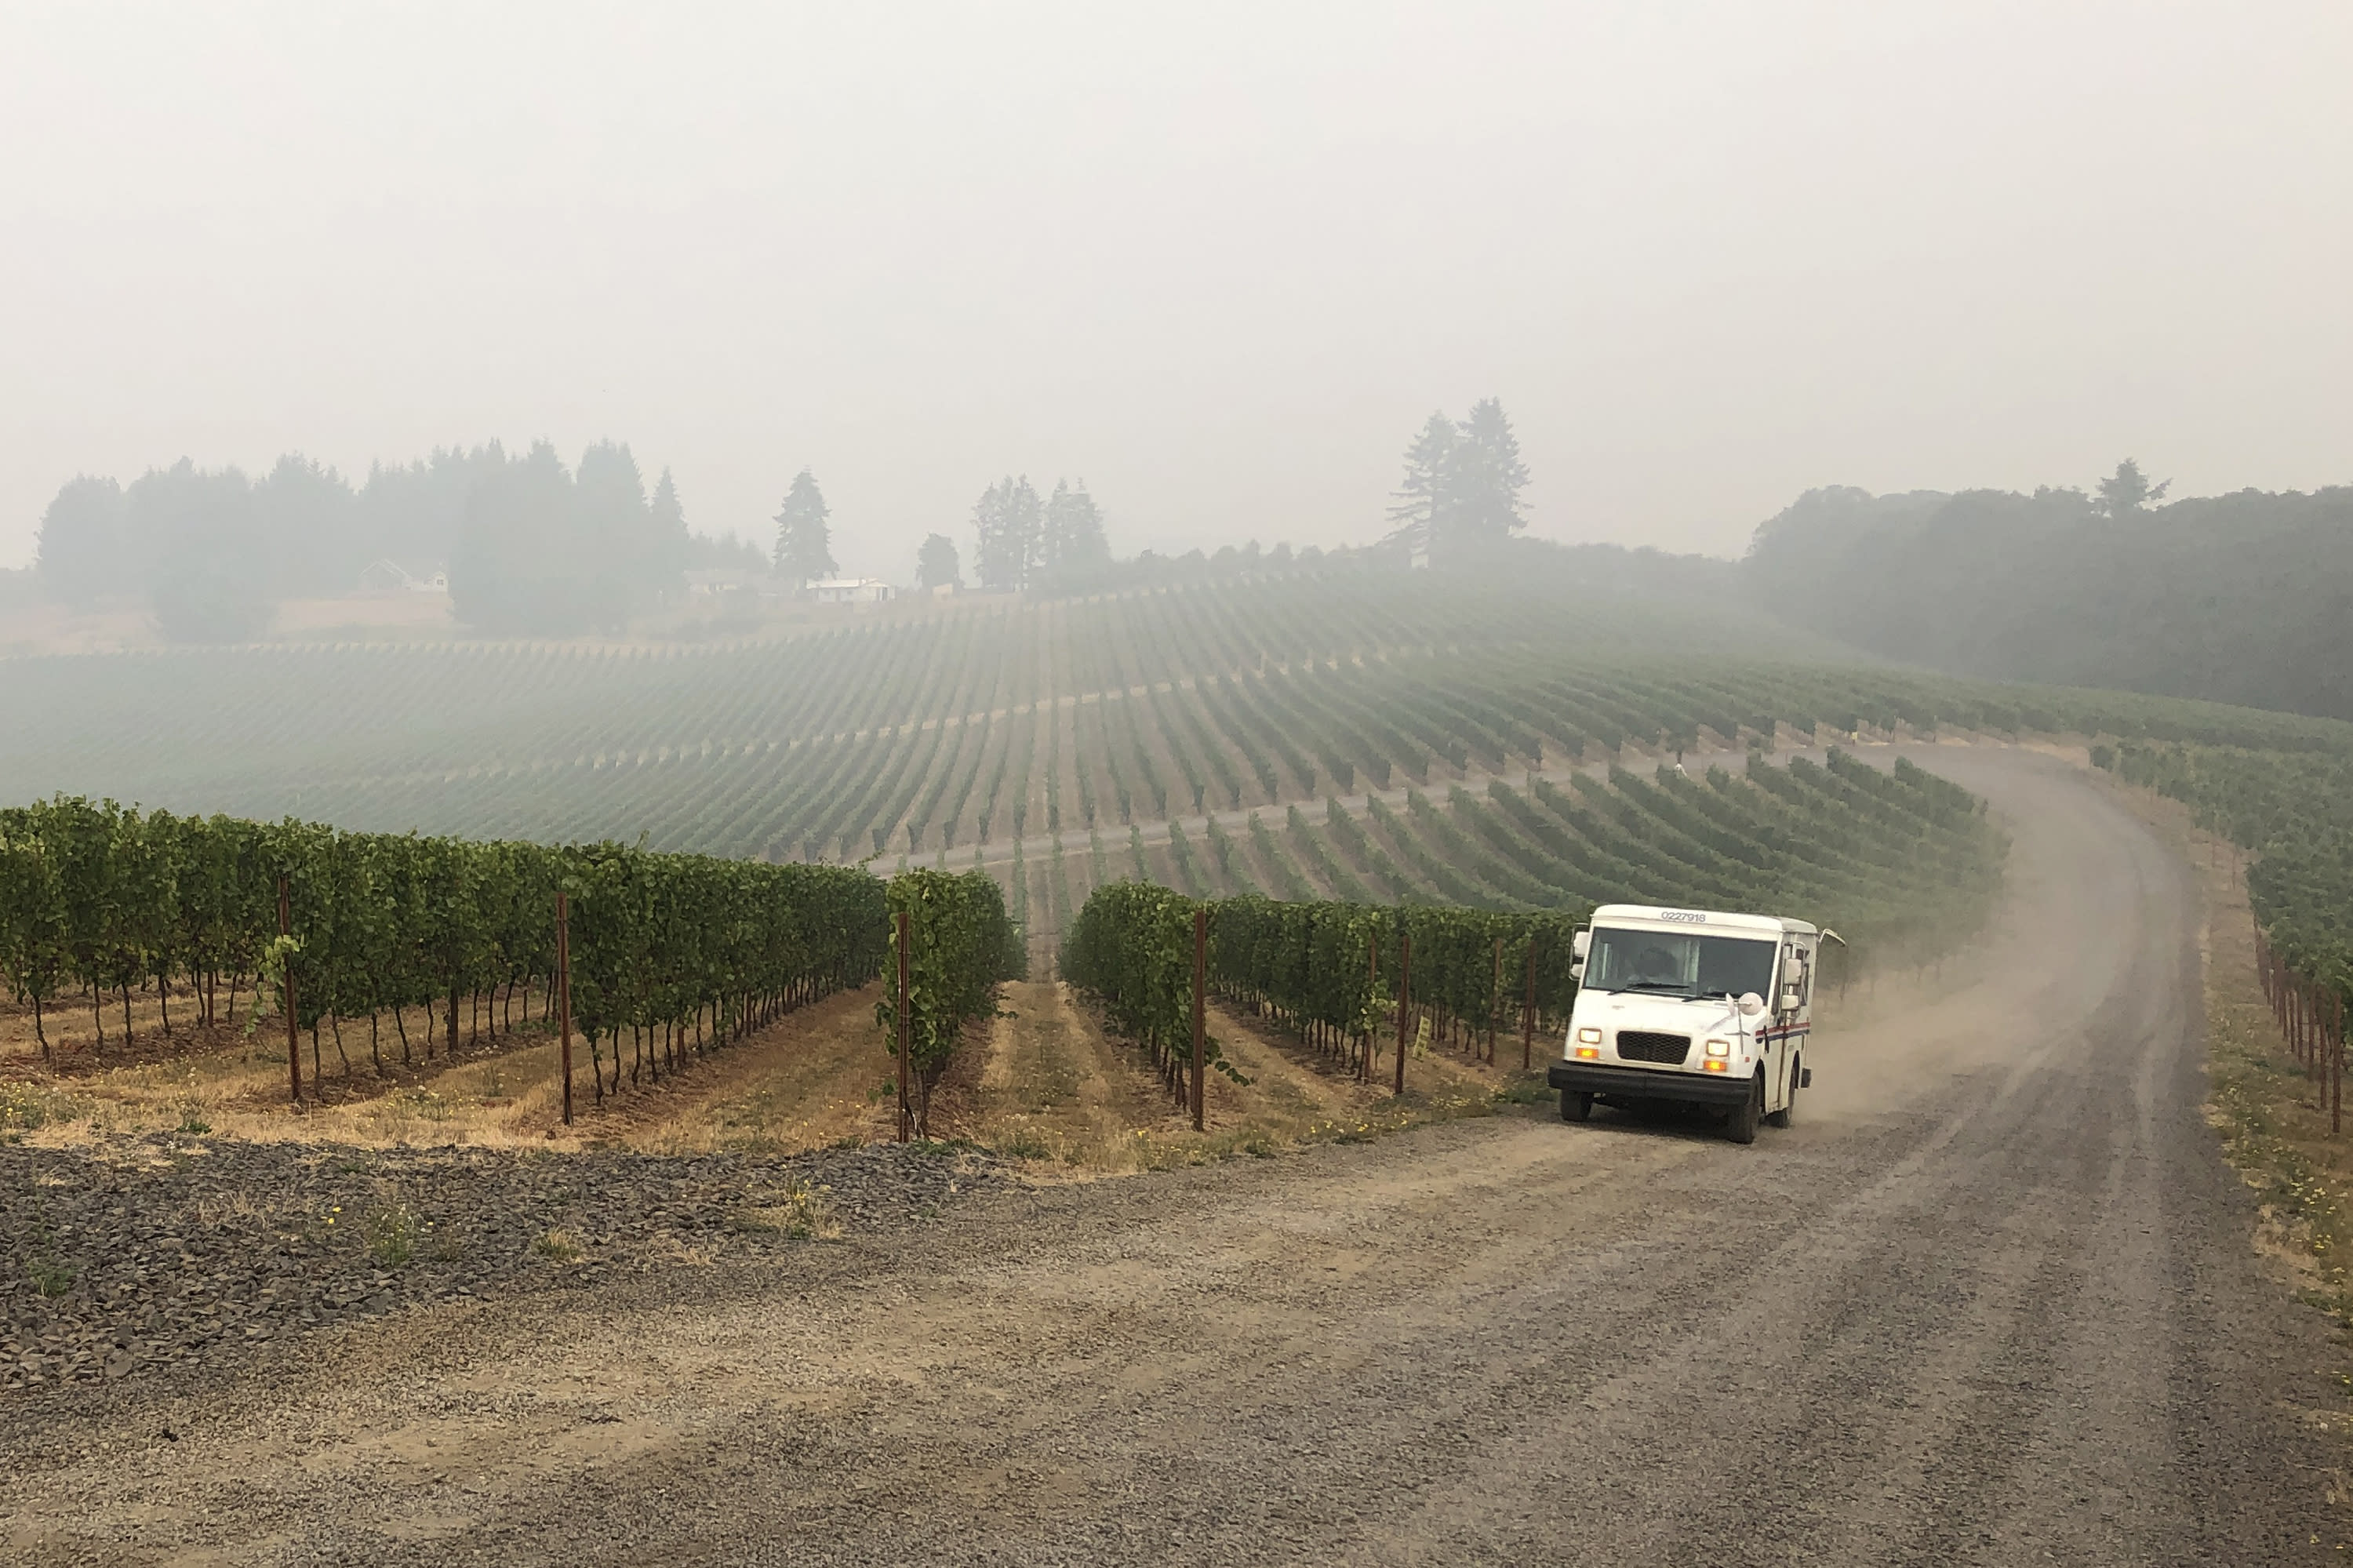 A U.S. postal delivery vehicle drives past at a smoke-shrouded vineyard in Salem, Ore., on Wednesday, Sept. 16, 2020. Smoke from the West Coast wildfires has tainted grapes in some of the nation's most celebrated wine regions. The resulting ashy flavor could spell disaster for the 2020 vintage. (AP Photo/Andrew Selsky)